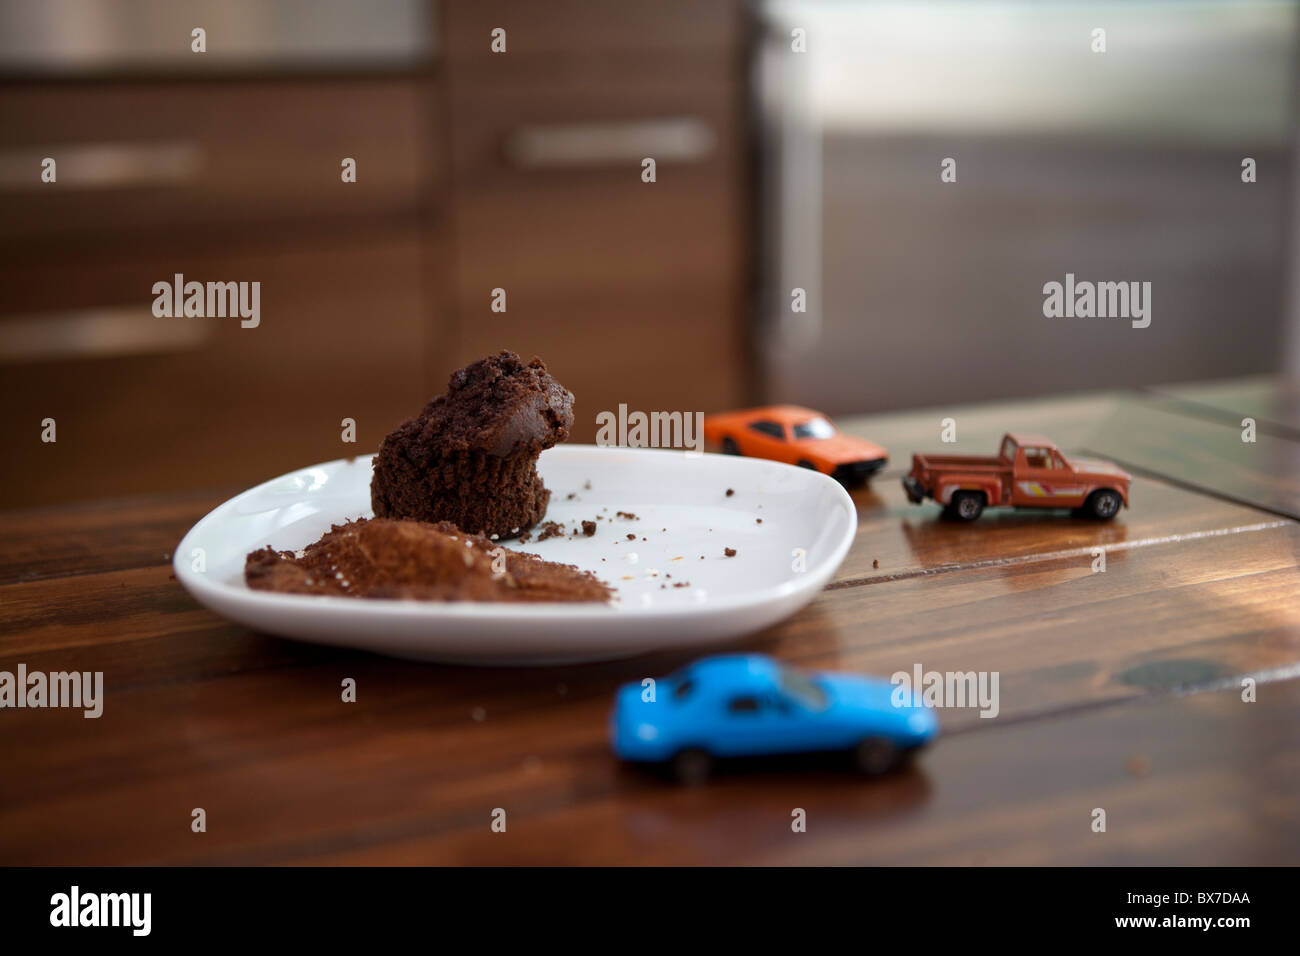 Muffin on a plate - Stock Image